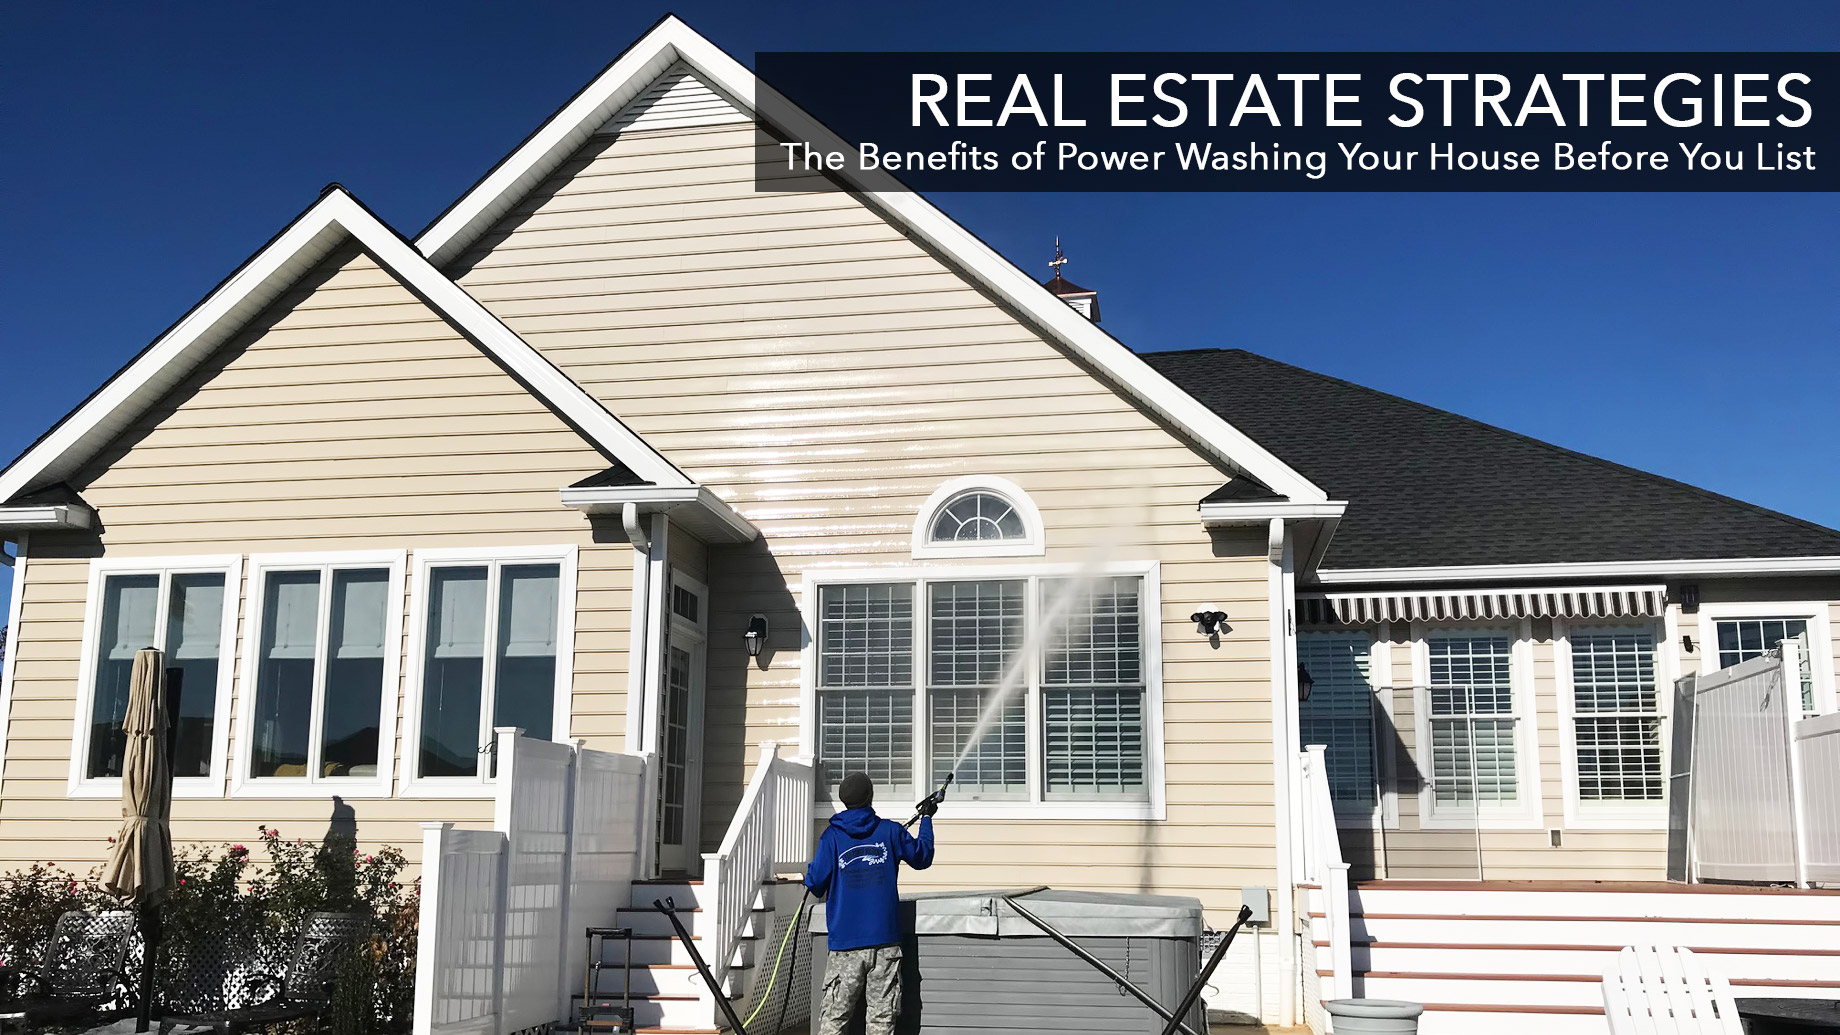 Real Estate Strategies - The Benefits of Power Washing Your House Before You List